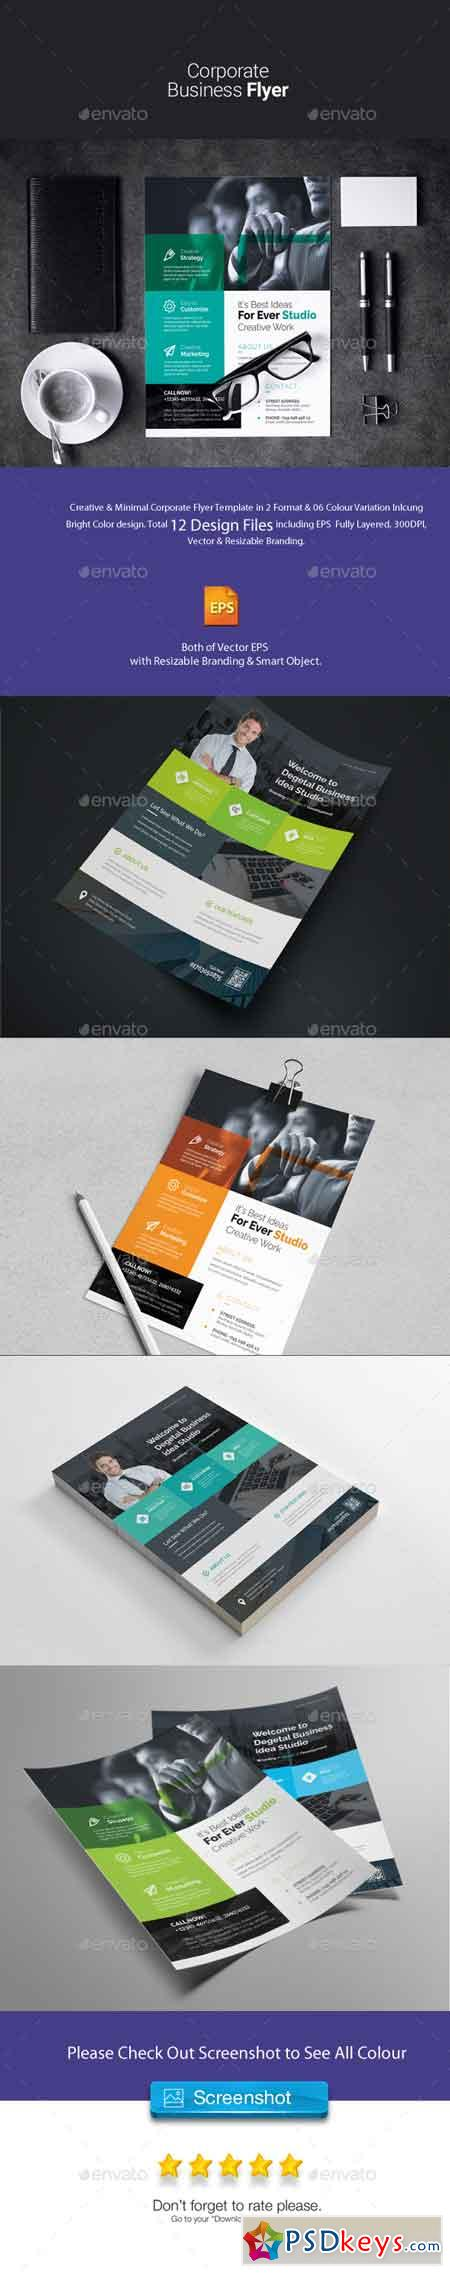 Corporate Flyer Bundle 2 in 1 22647506